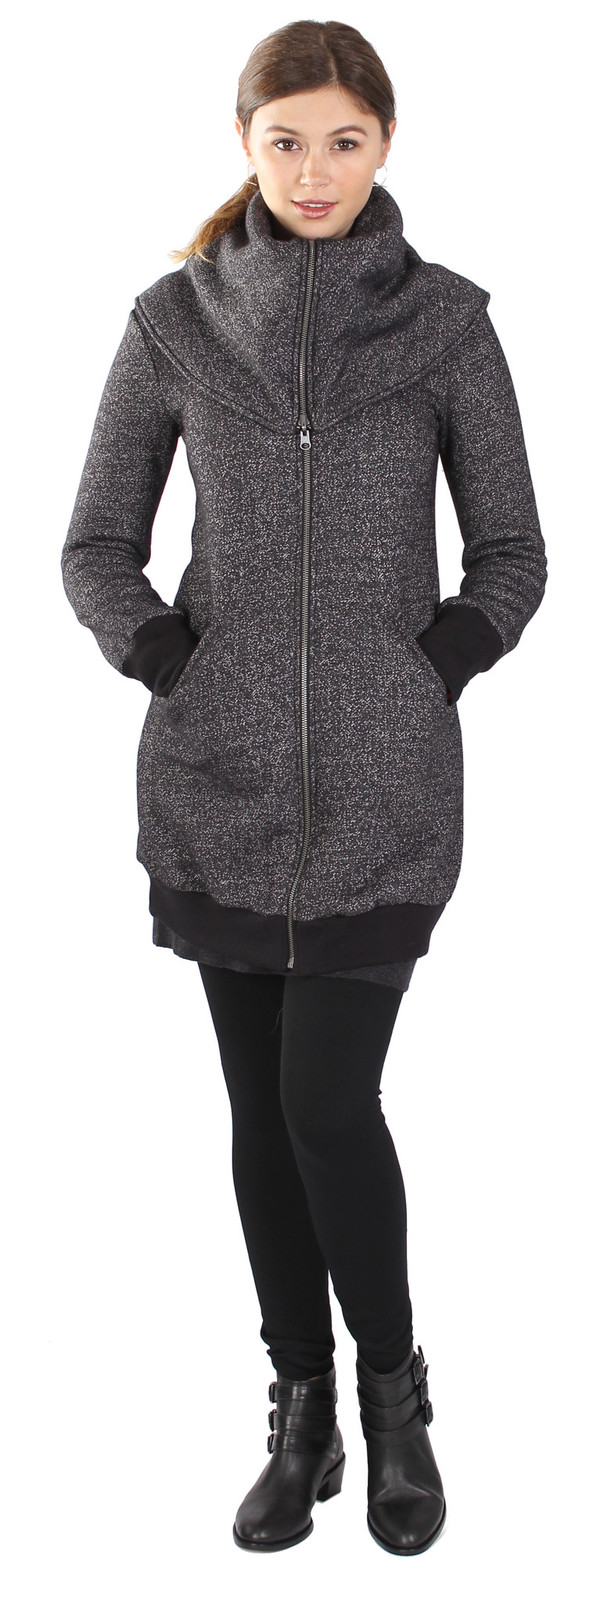 Curator Seacliff Speckle Coat